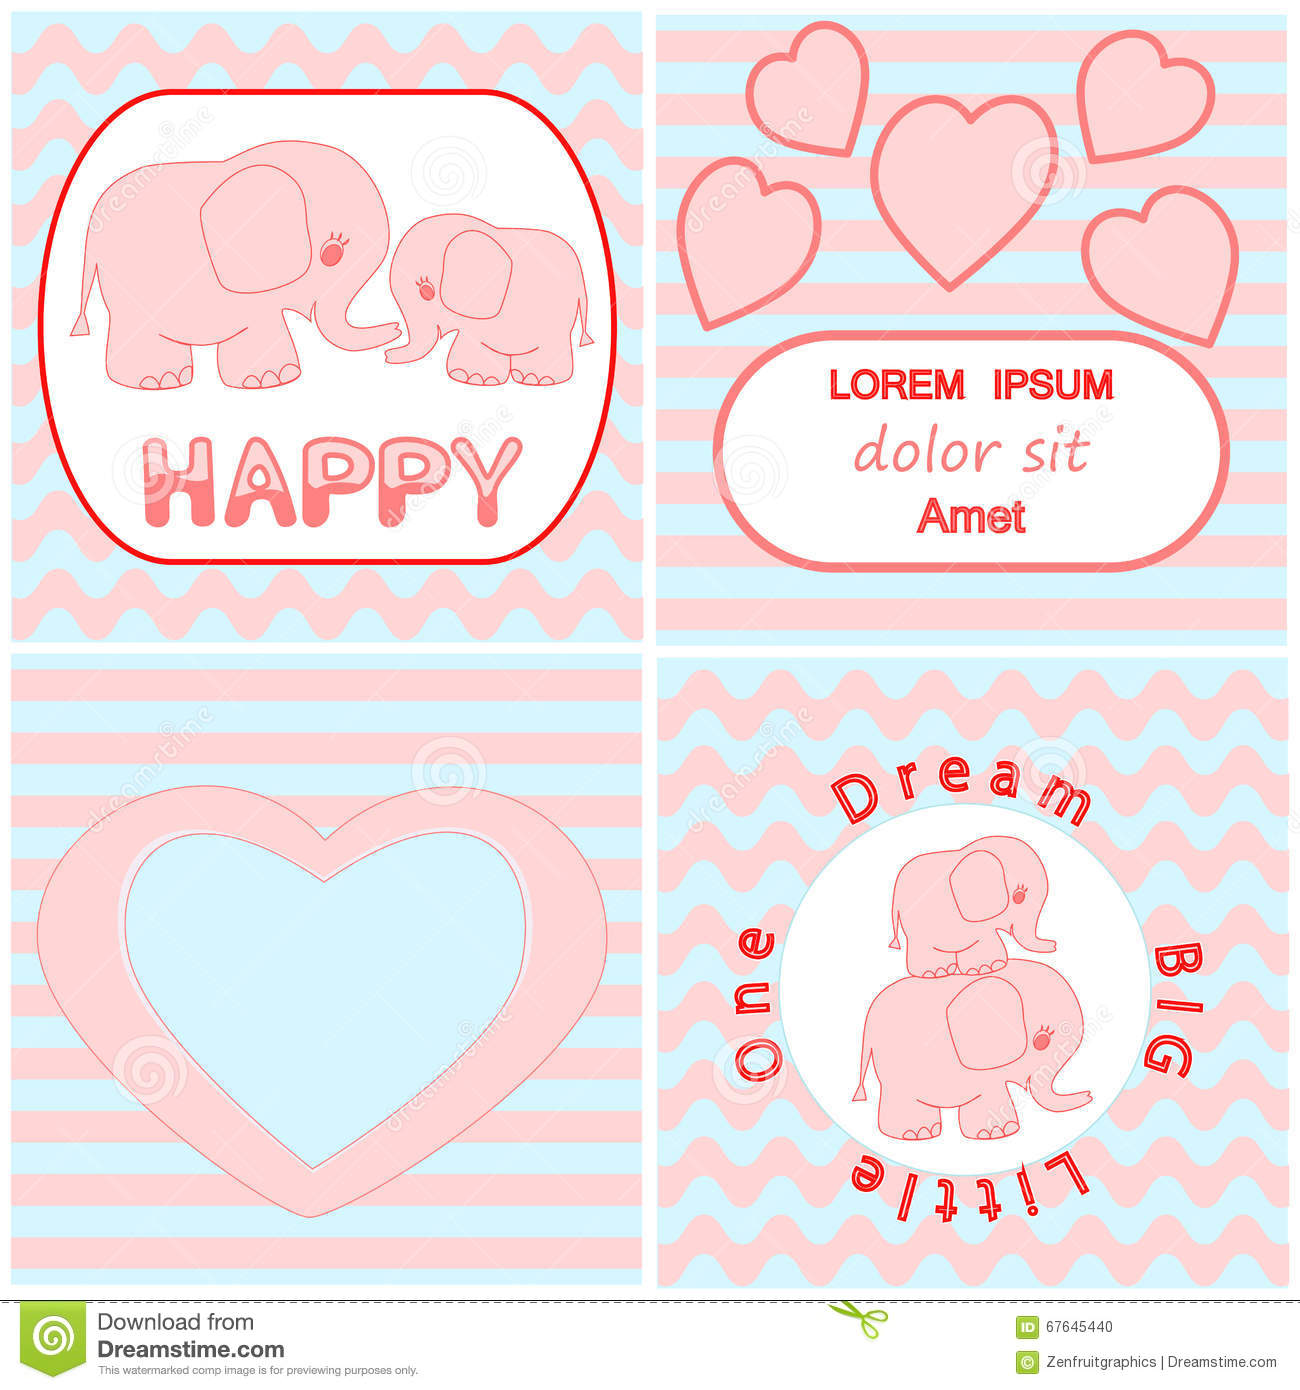 Baby shower invitation card set including Cartoon pink baby elephant card, Heart and wavy stripes background cards